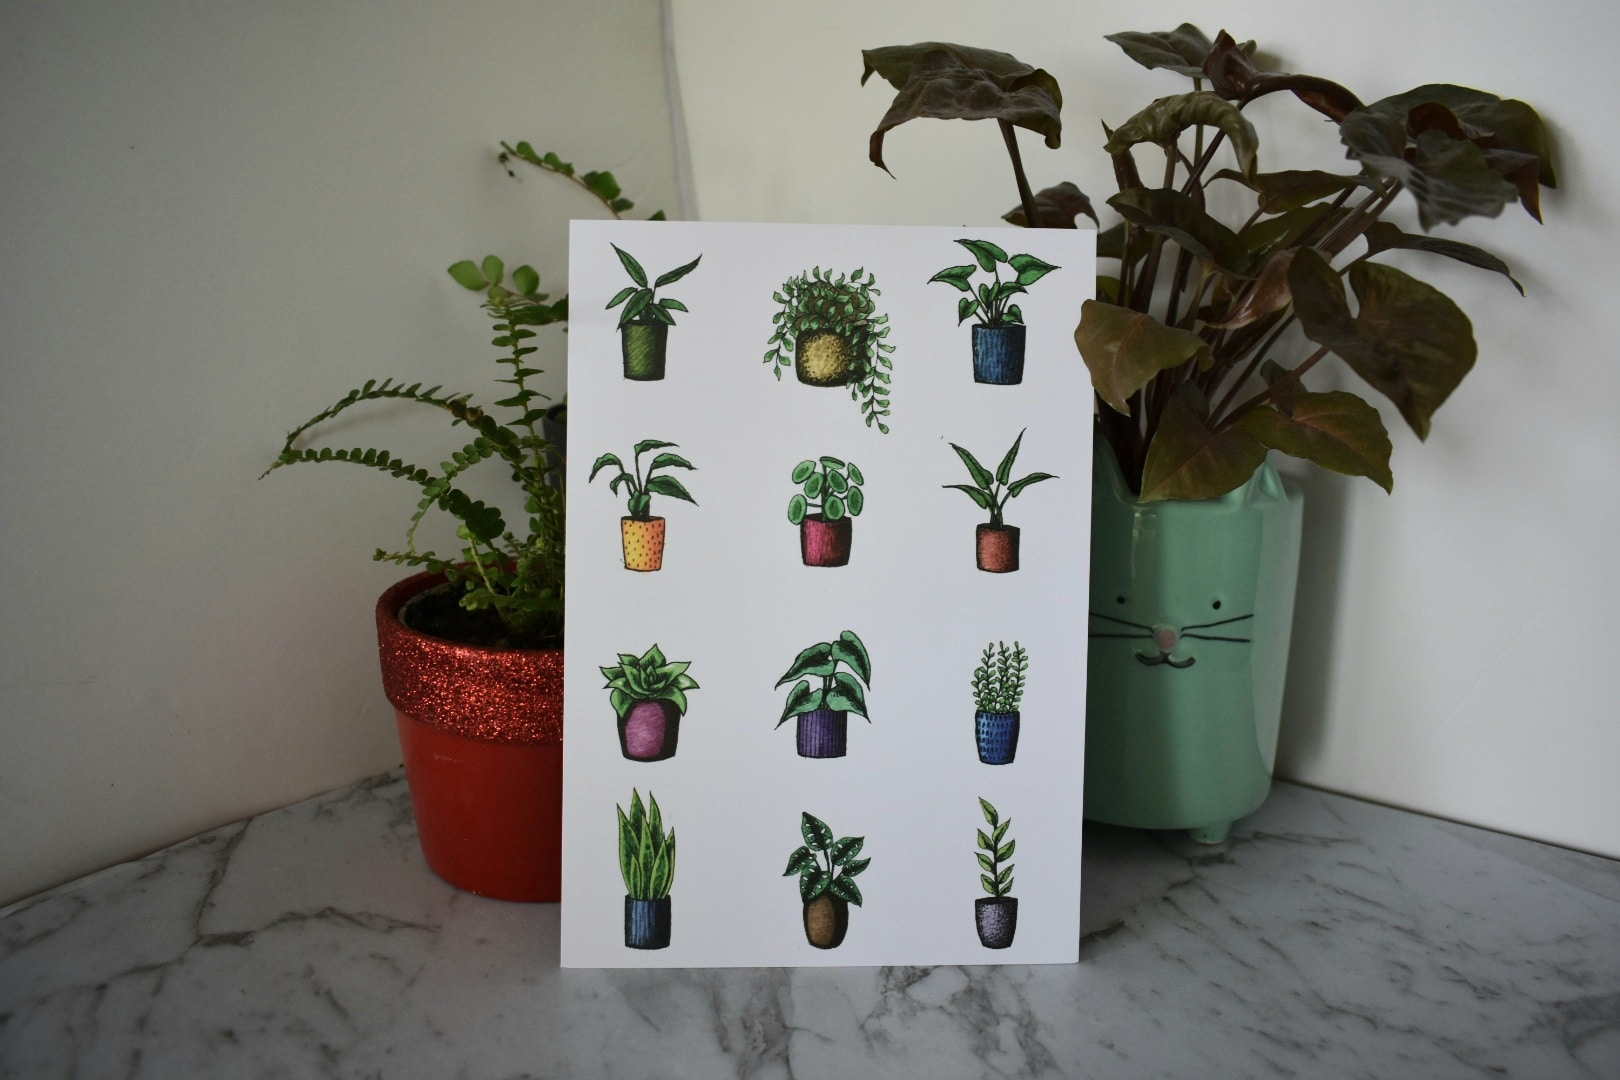 'Variety Potted Plants' A5 Art Prints Botanical Collection Sarah Sheldon Art By A Vibrant Nest